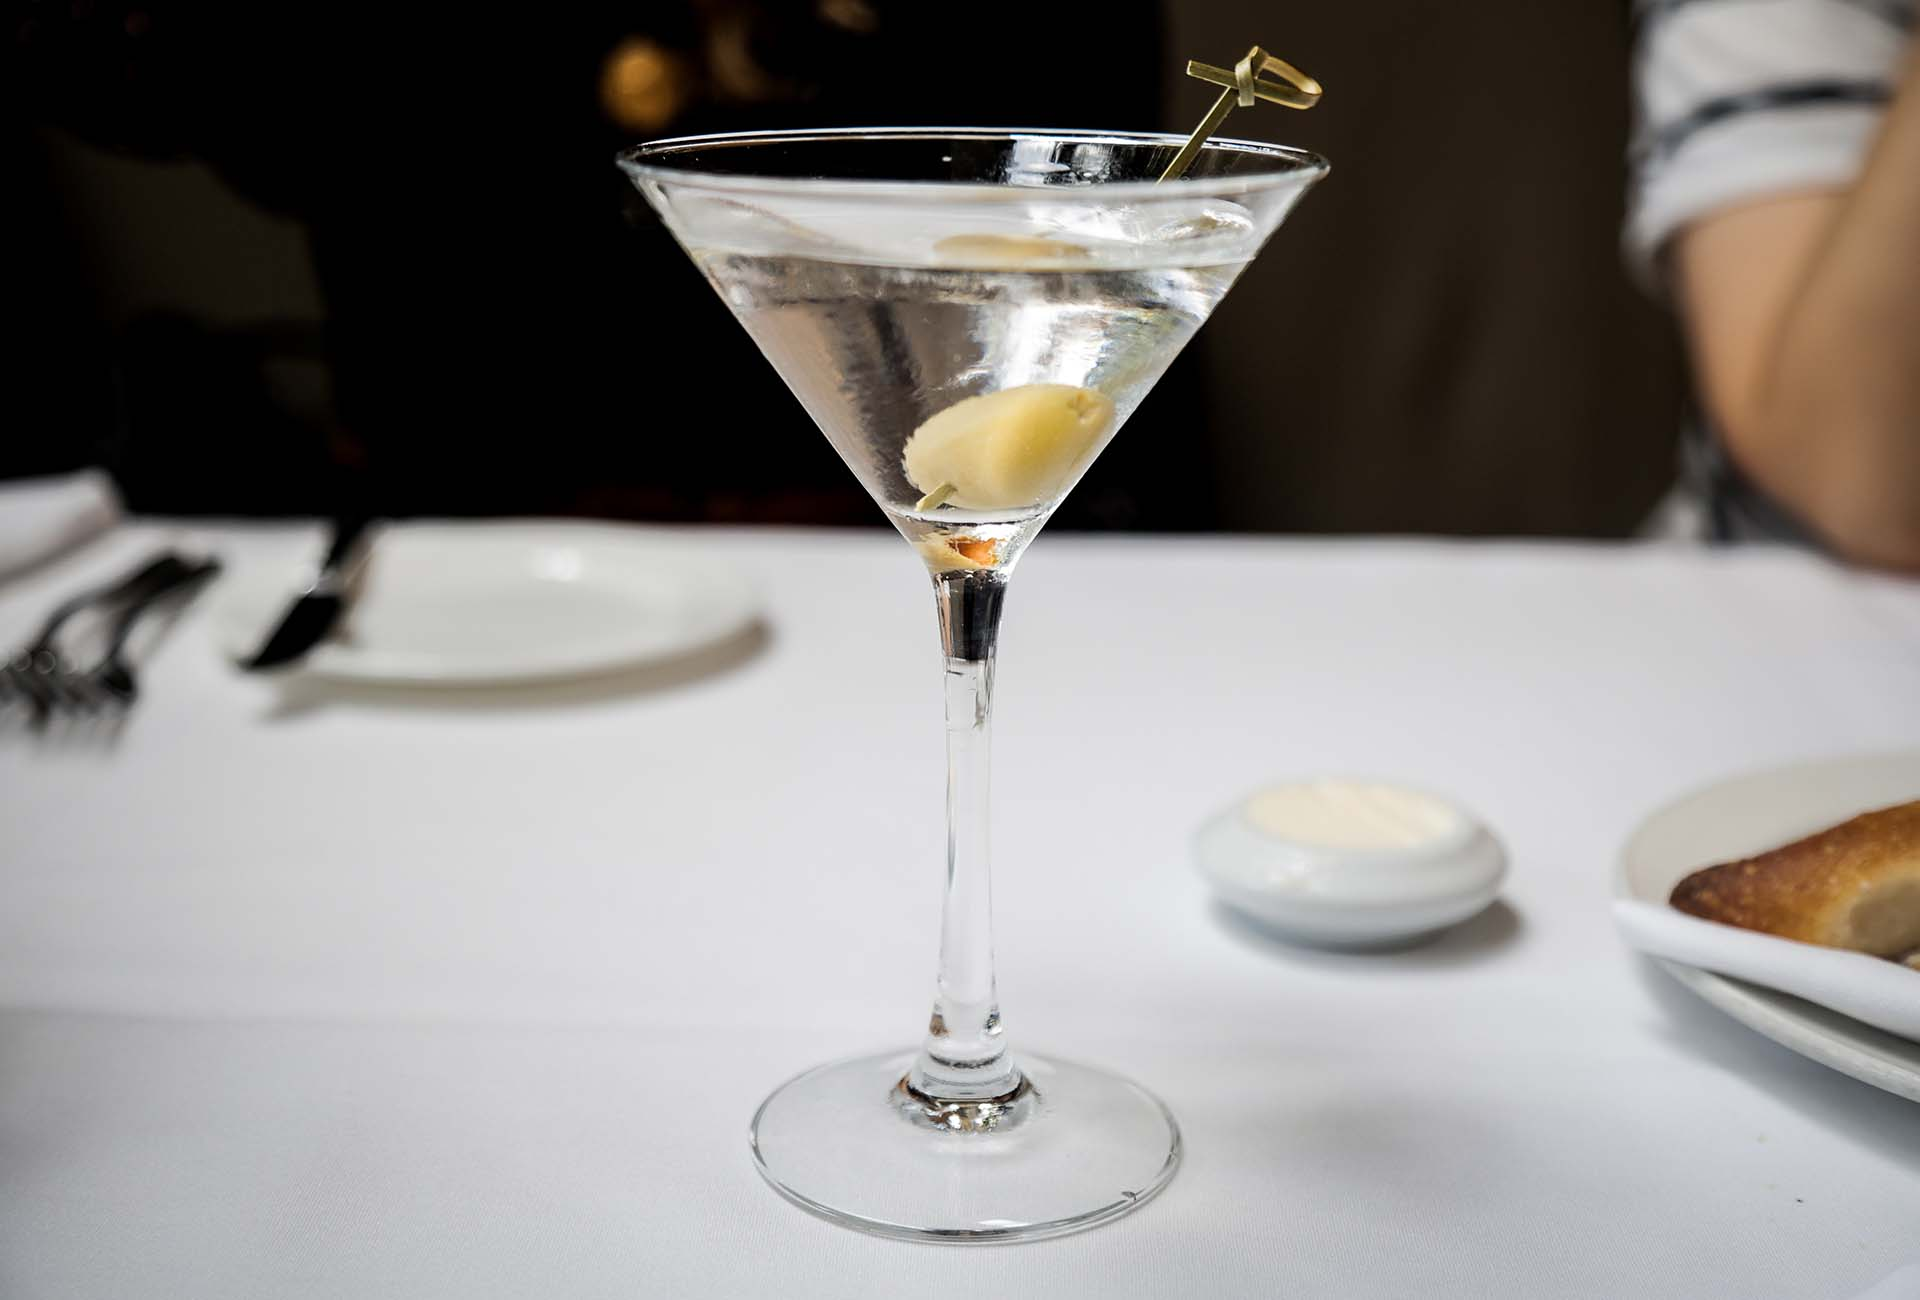 The $5 gin martini from One Market's lunch cocktail menu